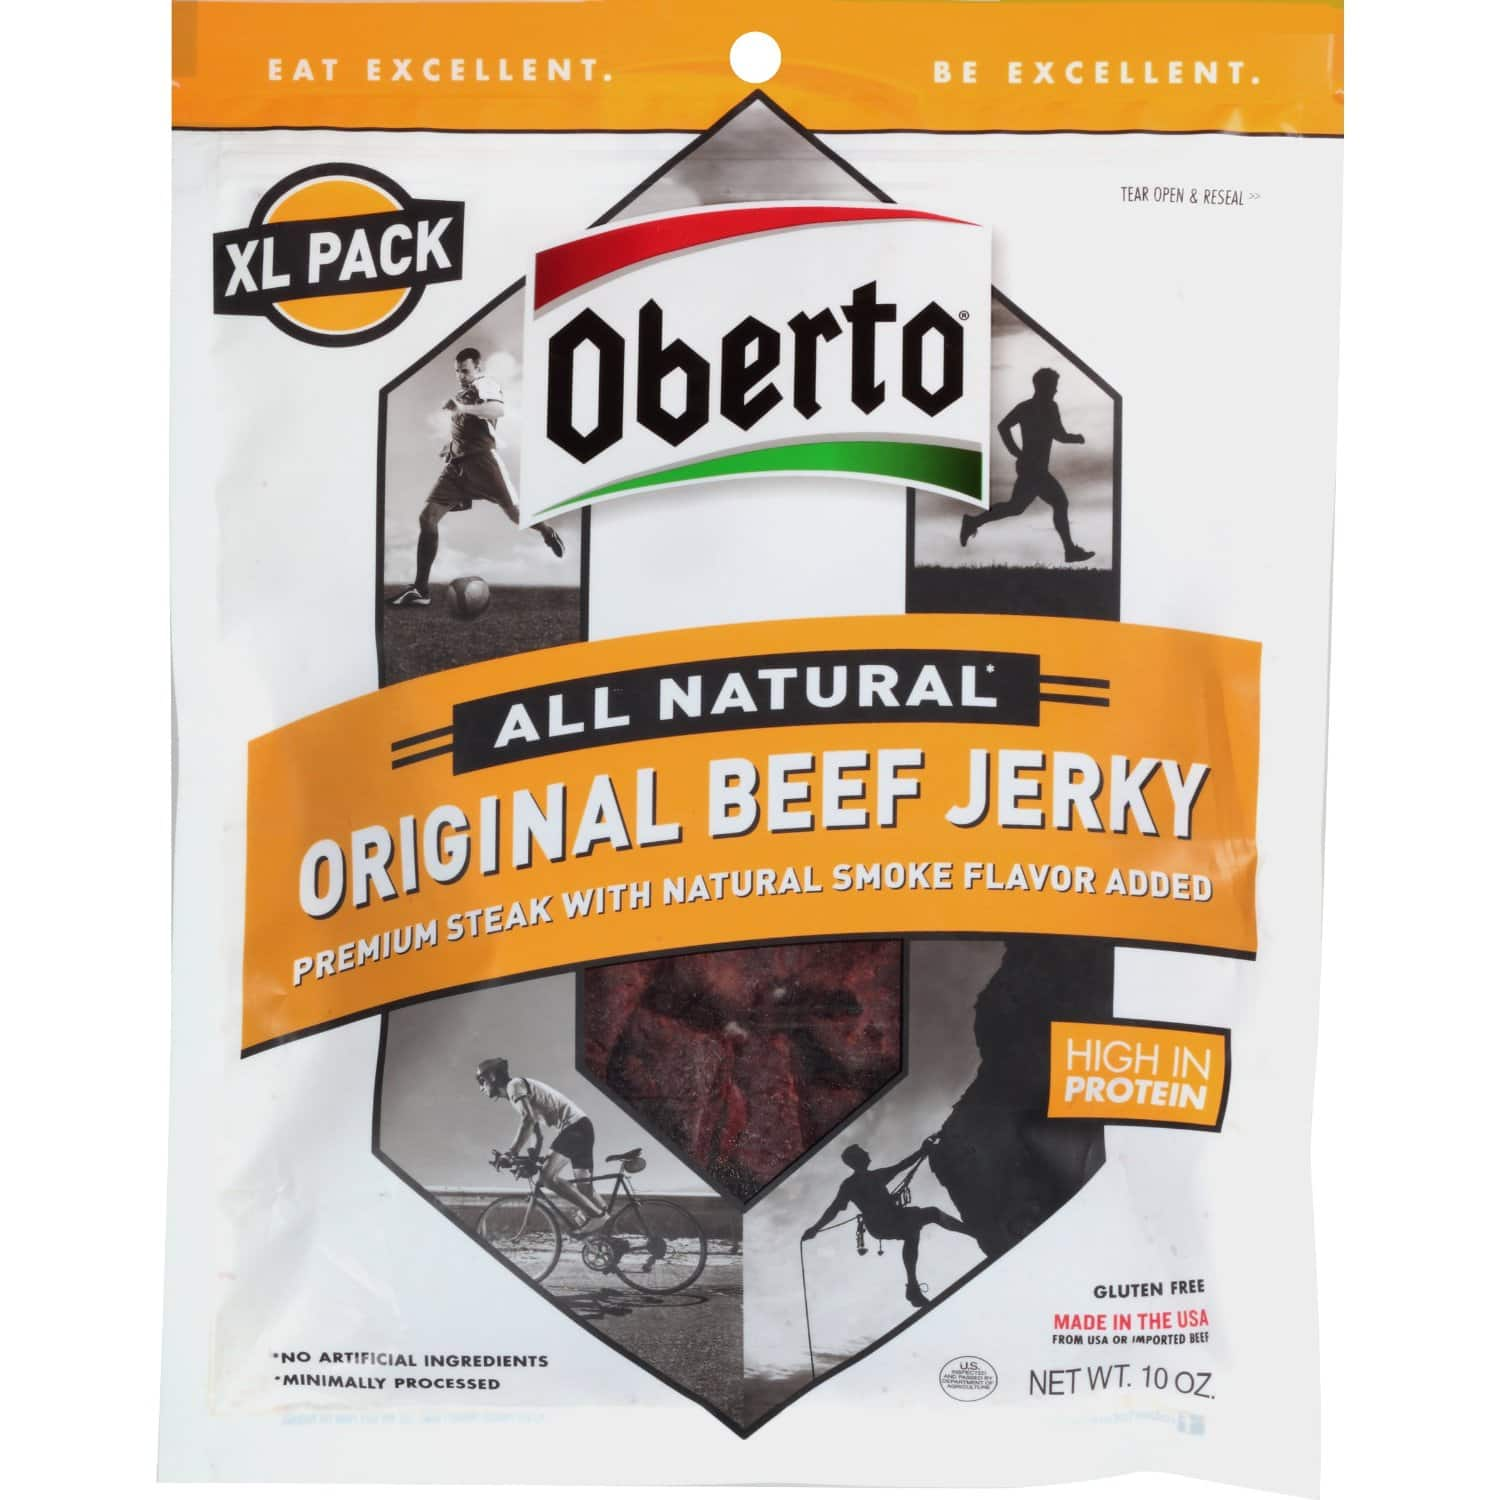 10oz. Oberto All Natural Original Beef Jerky $7.82 + Free Shipping